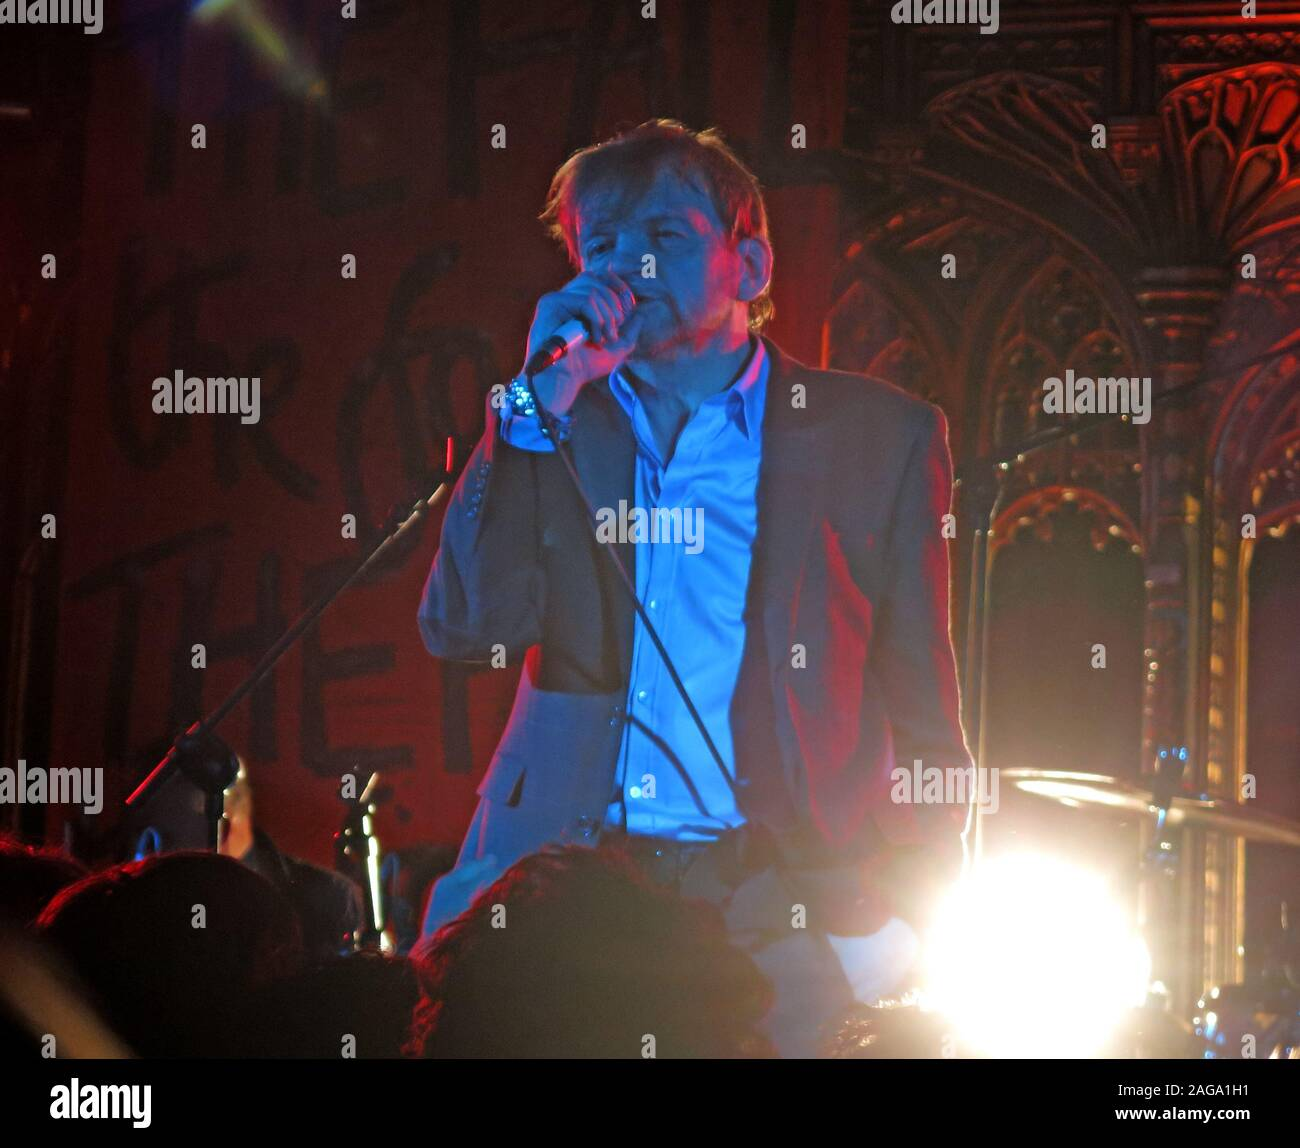 Mark E Smith & The Fall perform 15/05/2014 Manchester Cathedral gig - MES on vocals with microphone Stock Photo